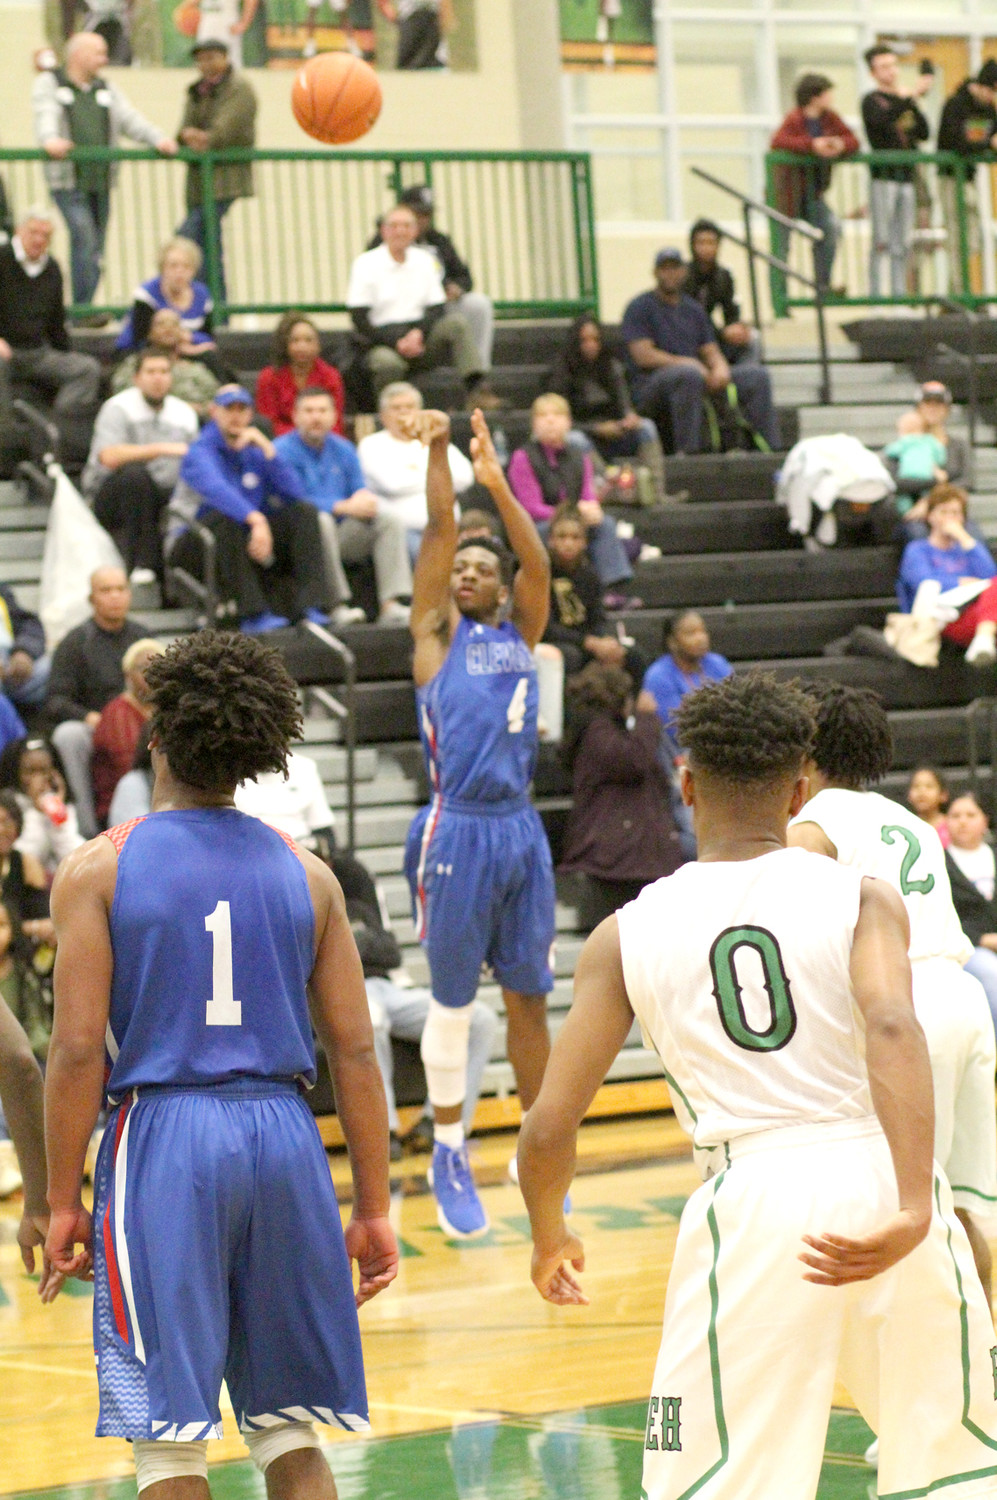 CLEVELAND SENIOR Mullek Bradford puts up a 3-point shot during an 83-65 victory at East Hamilton on Thursday night. Bradford finished with 18 points and 10 assists.